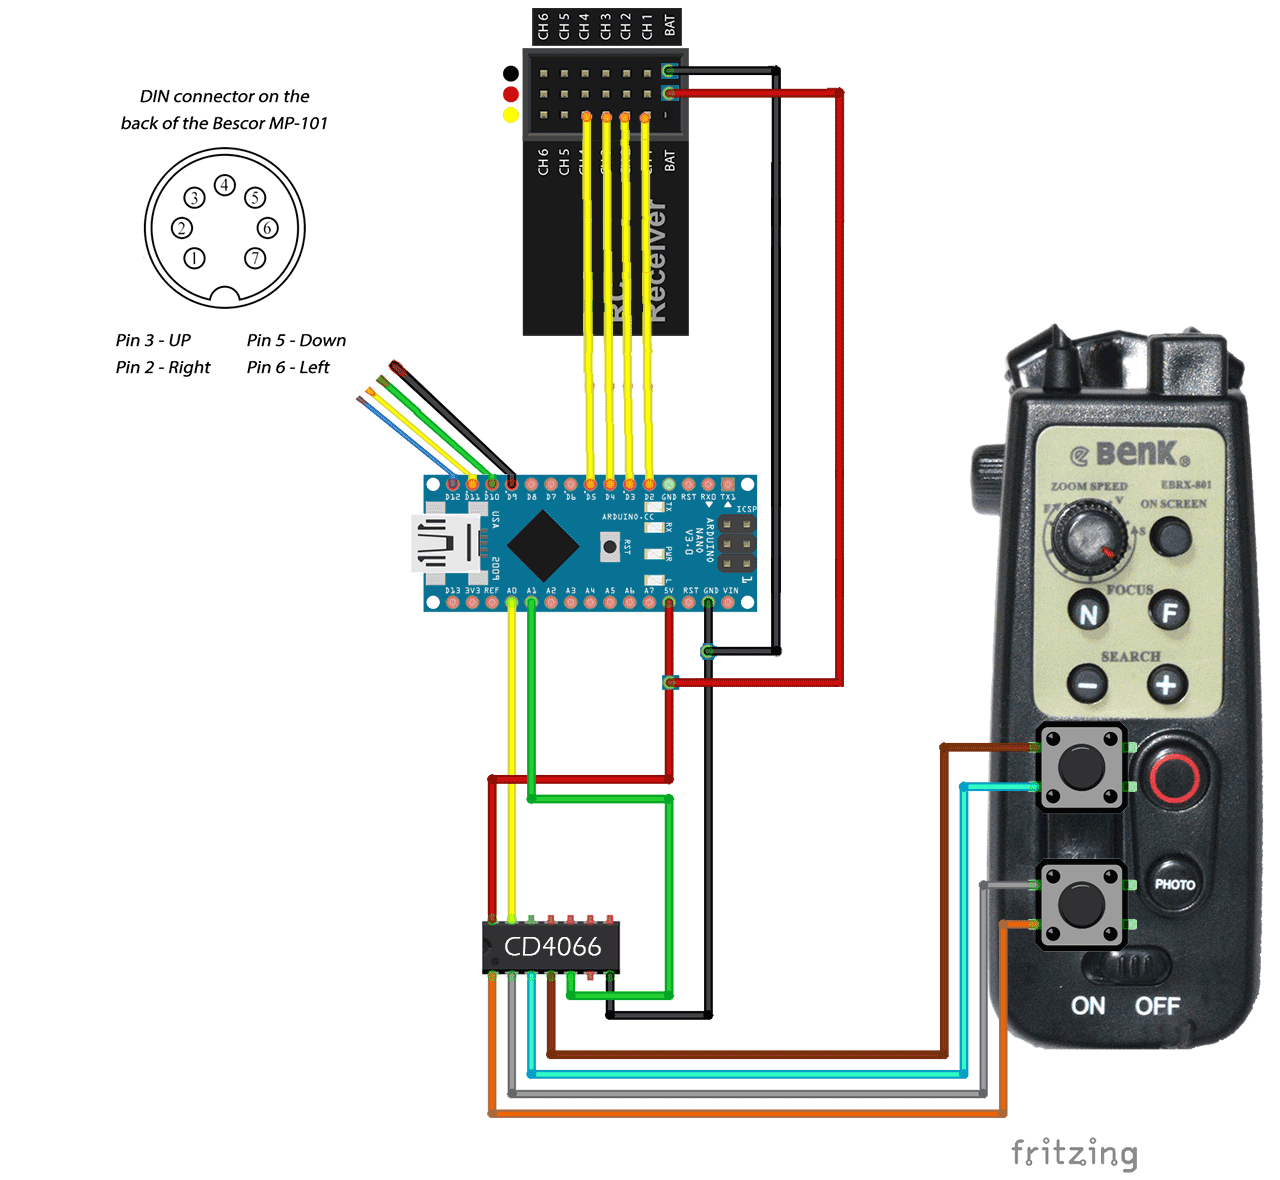 Parallel Wiring Diagram Ptz Cameras Schematic Diagrams Arduino Camera Tutorial Pinterest 485